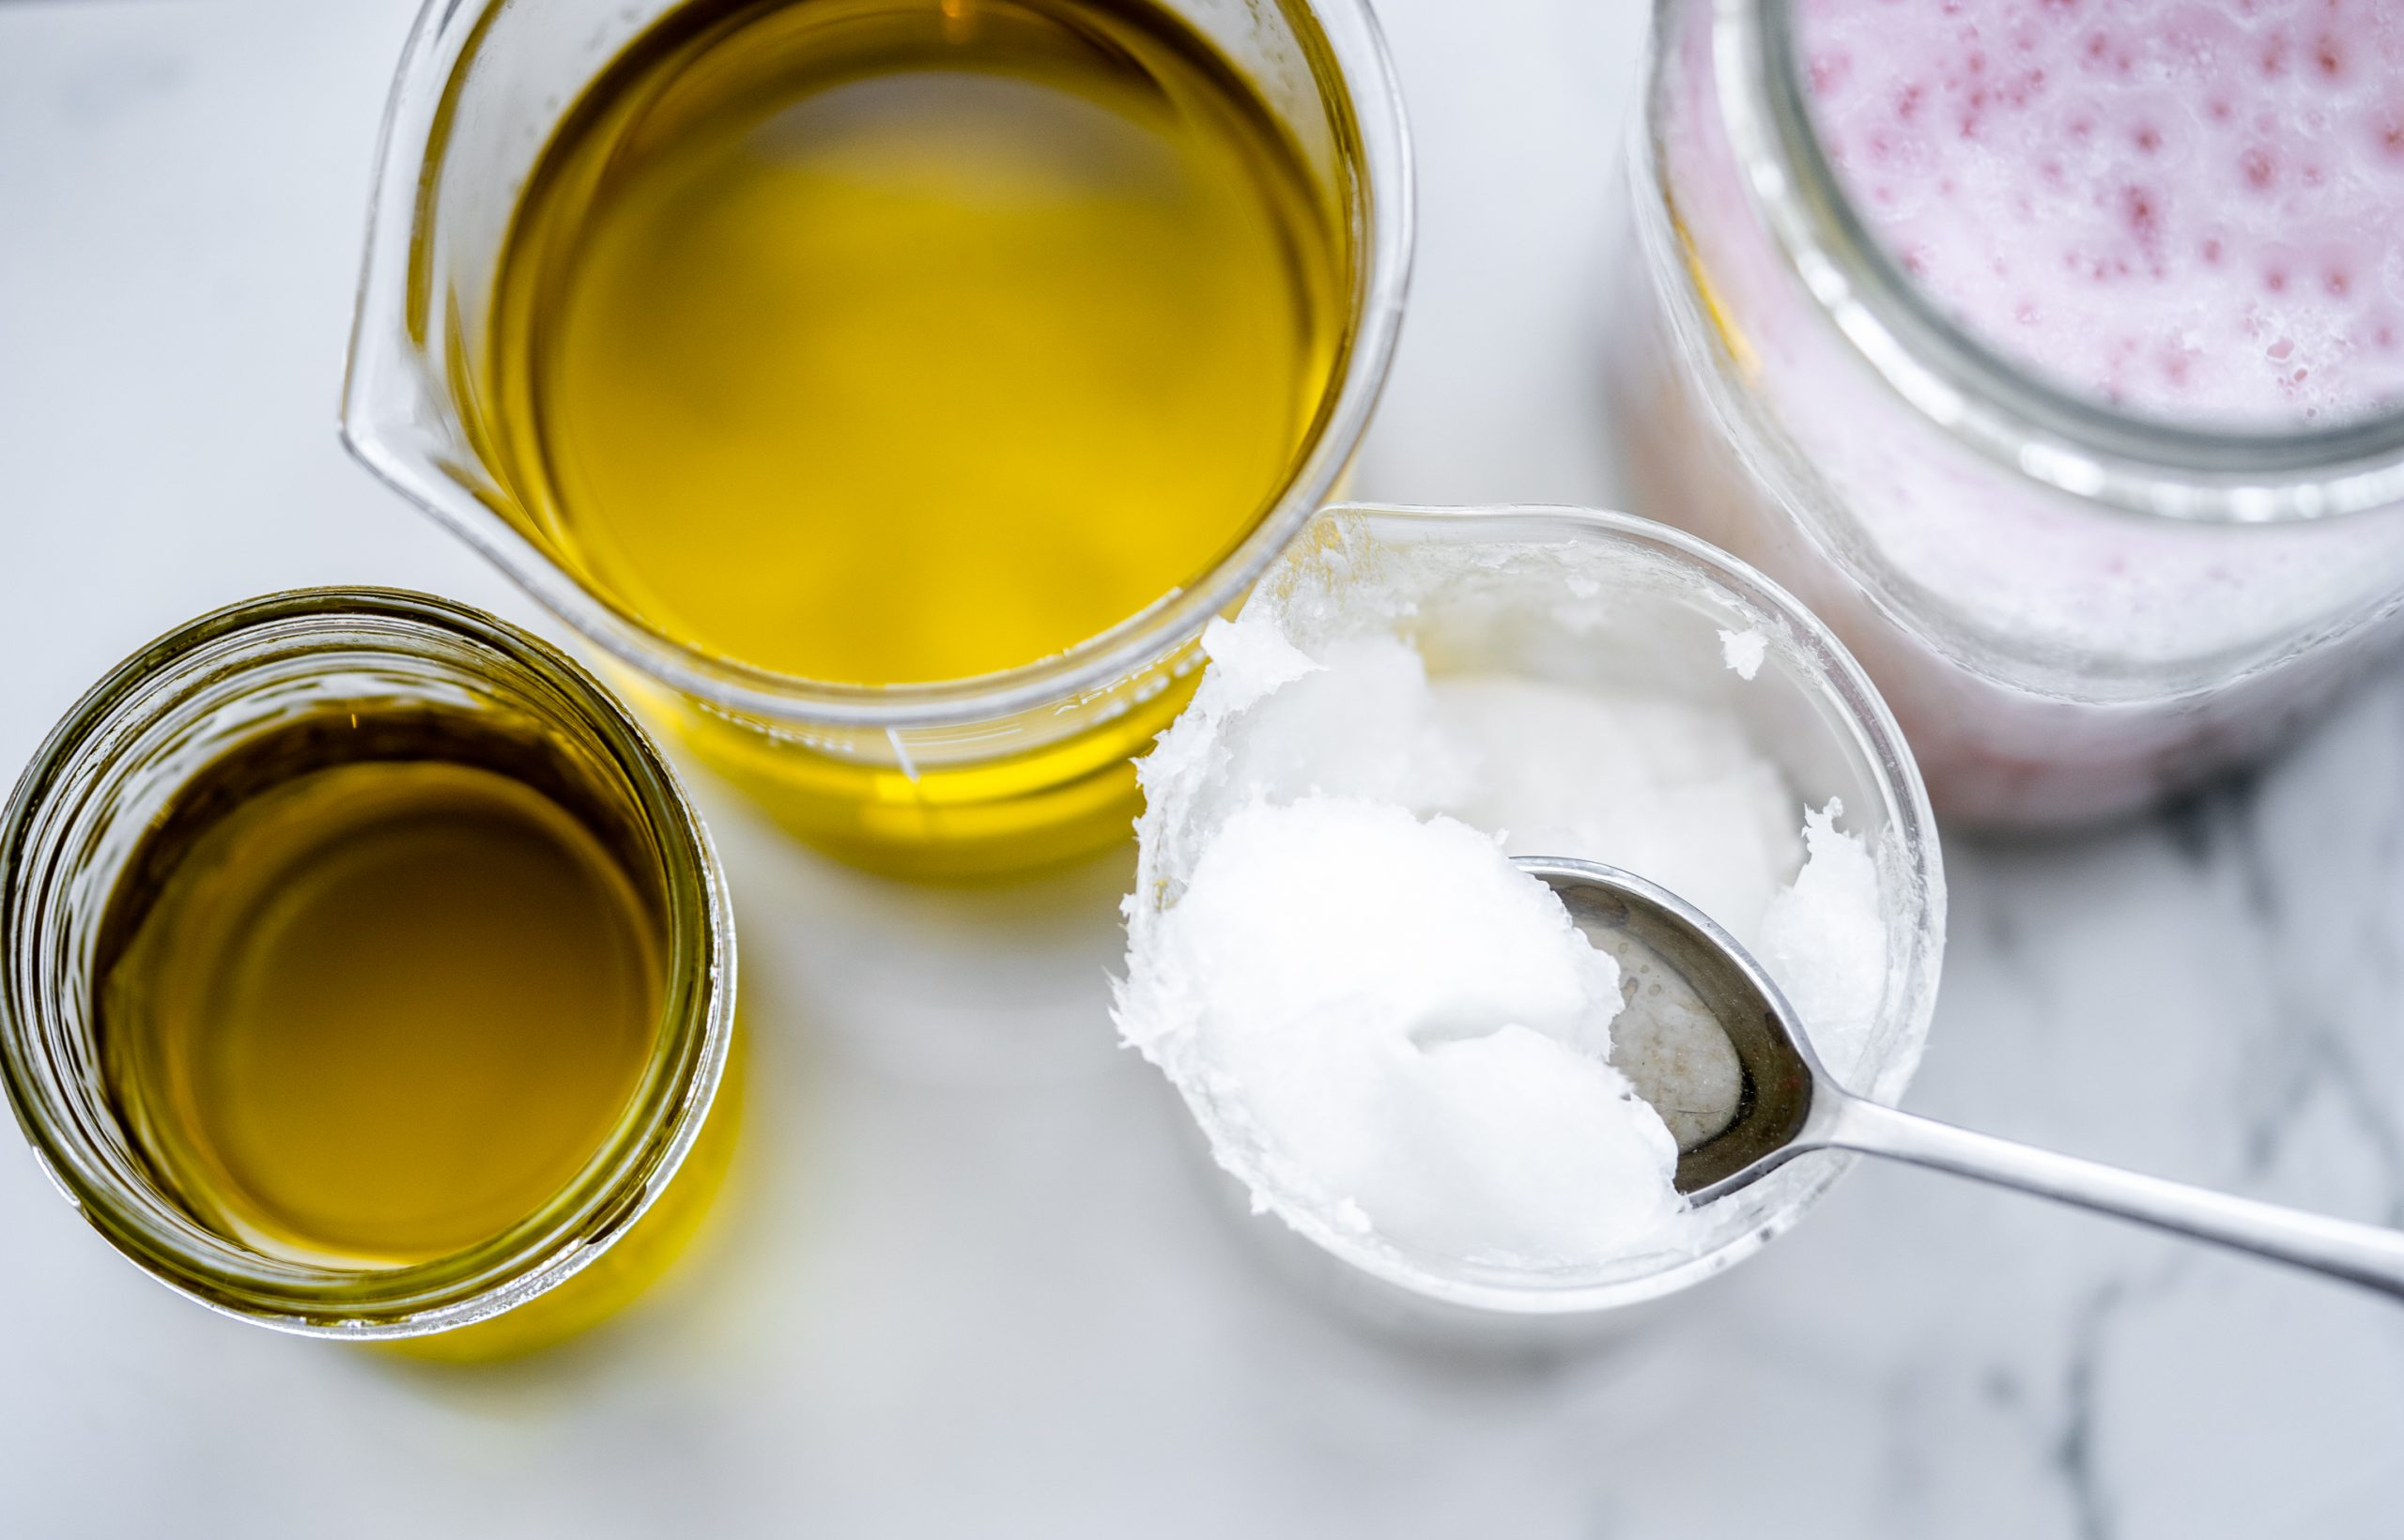 jars of organic oil and coconut oil